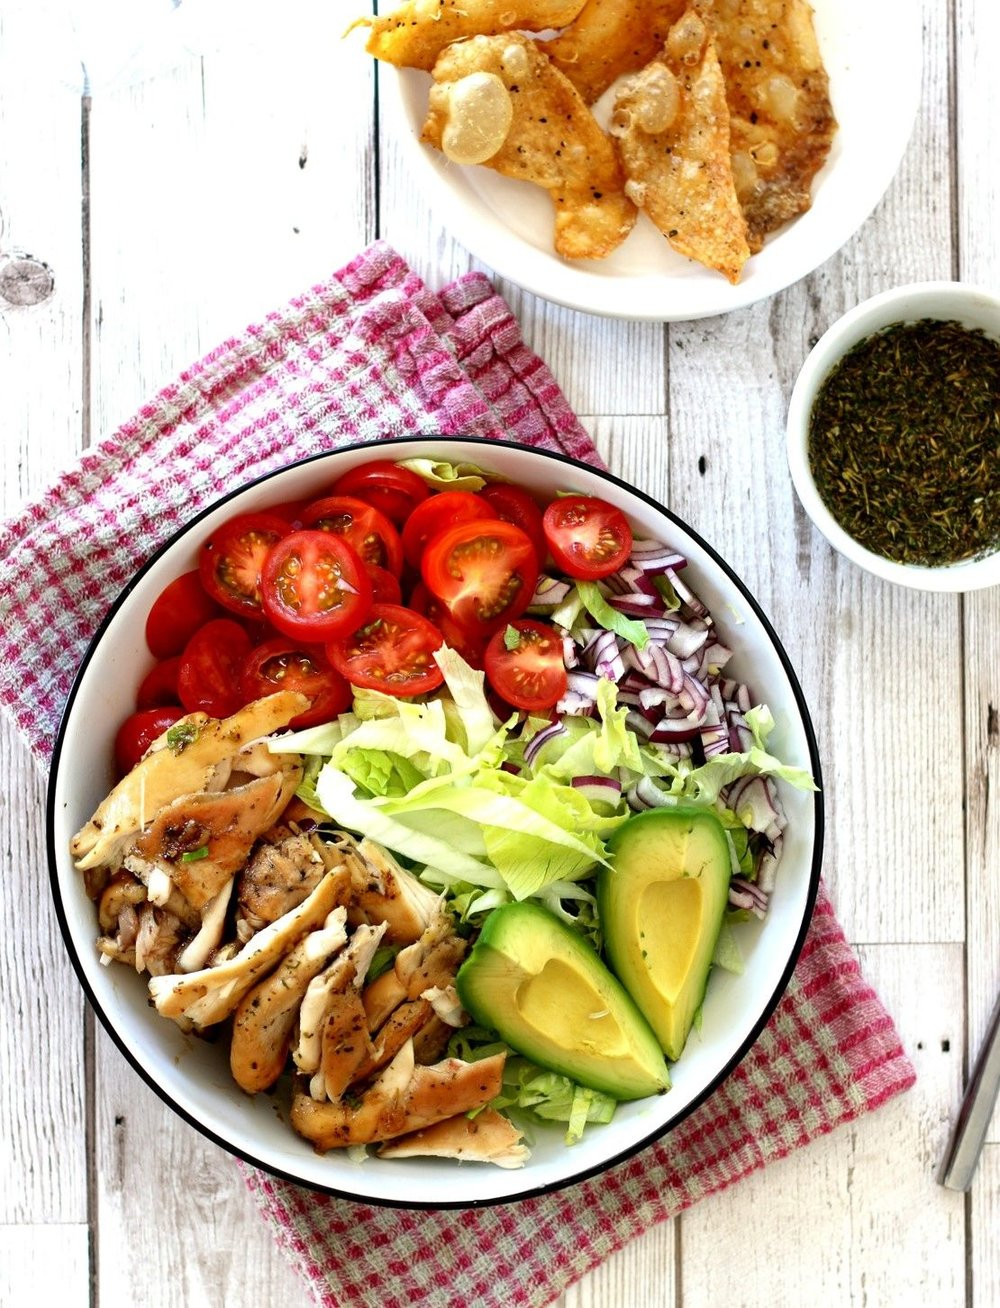 chicken-avocado-salad-crsipy-crackling-recipe-tiny-budget-cooking.jpg